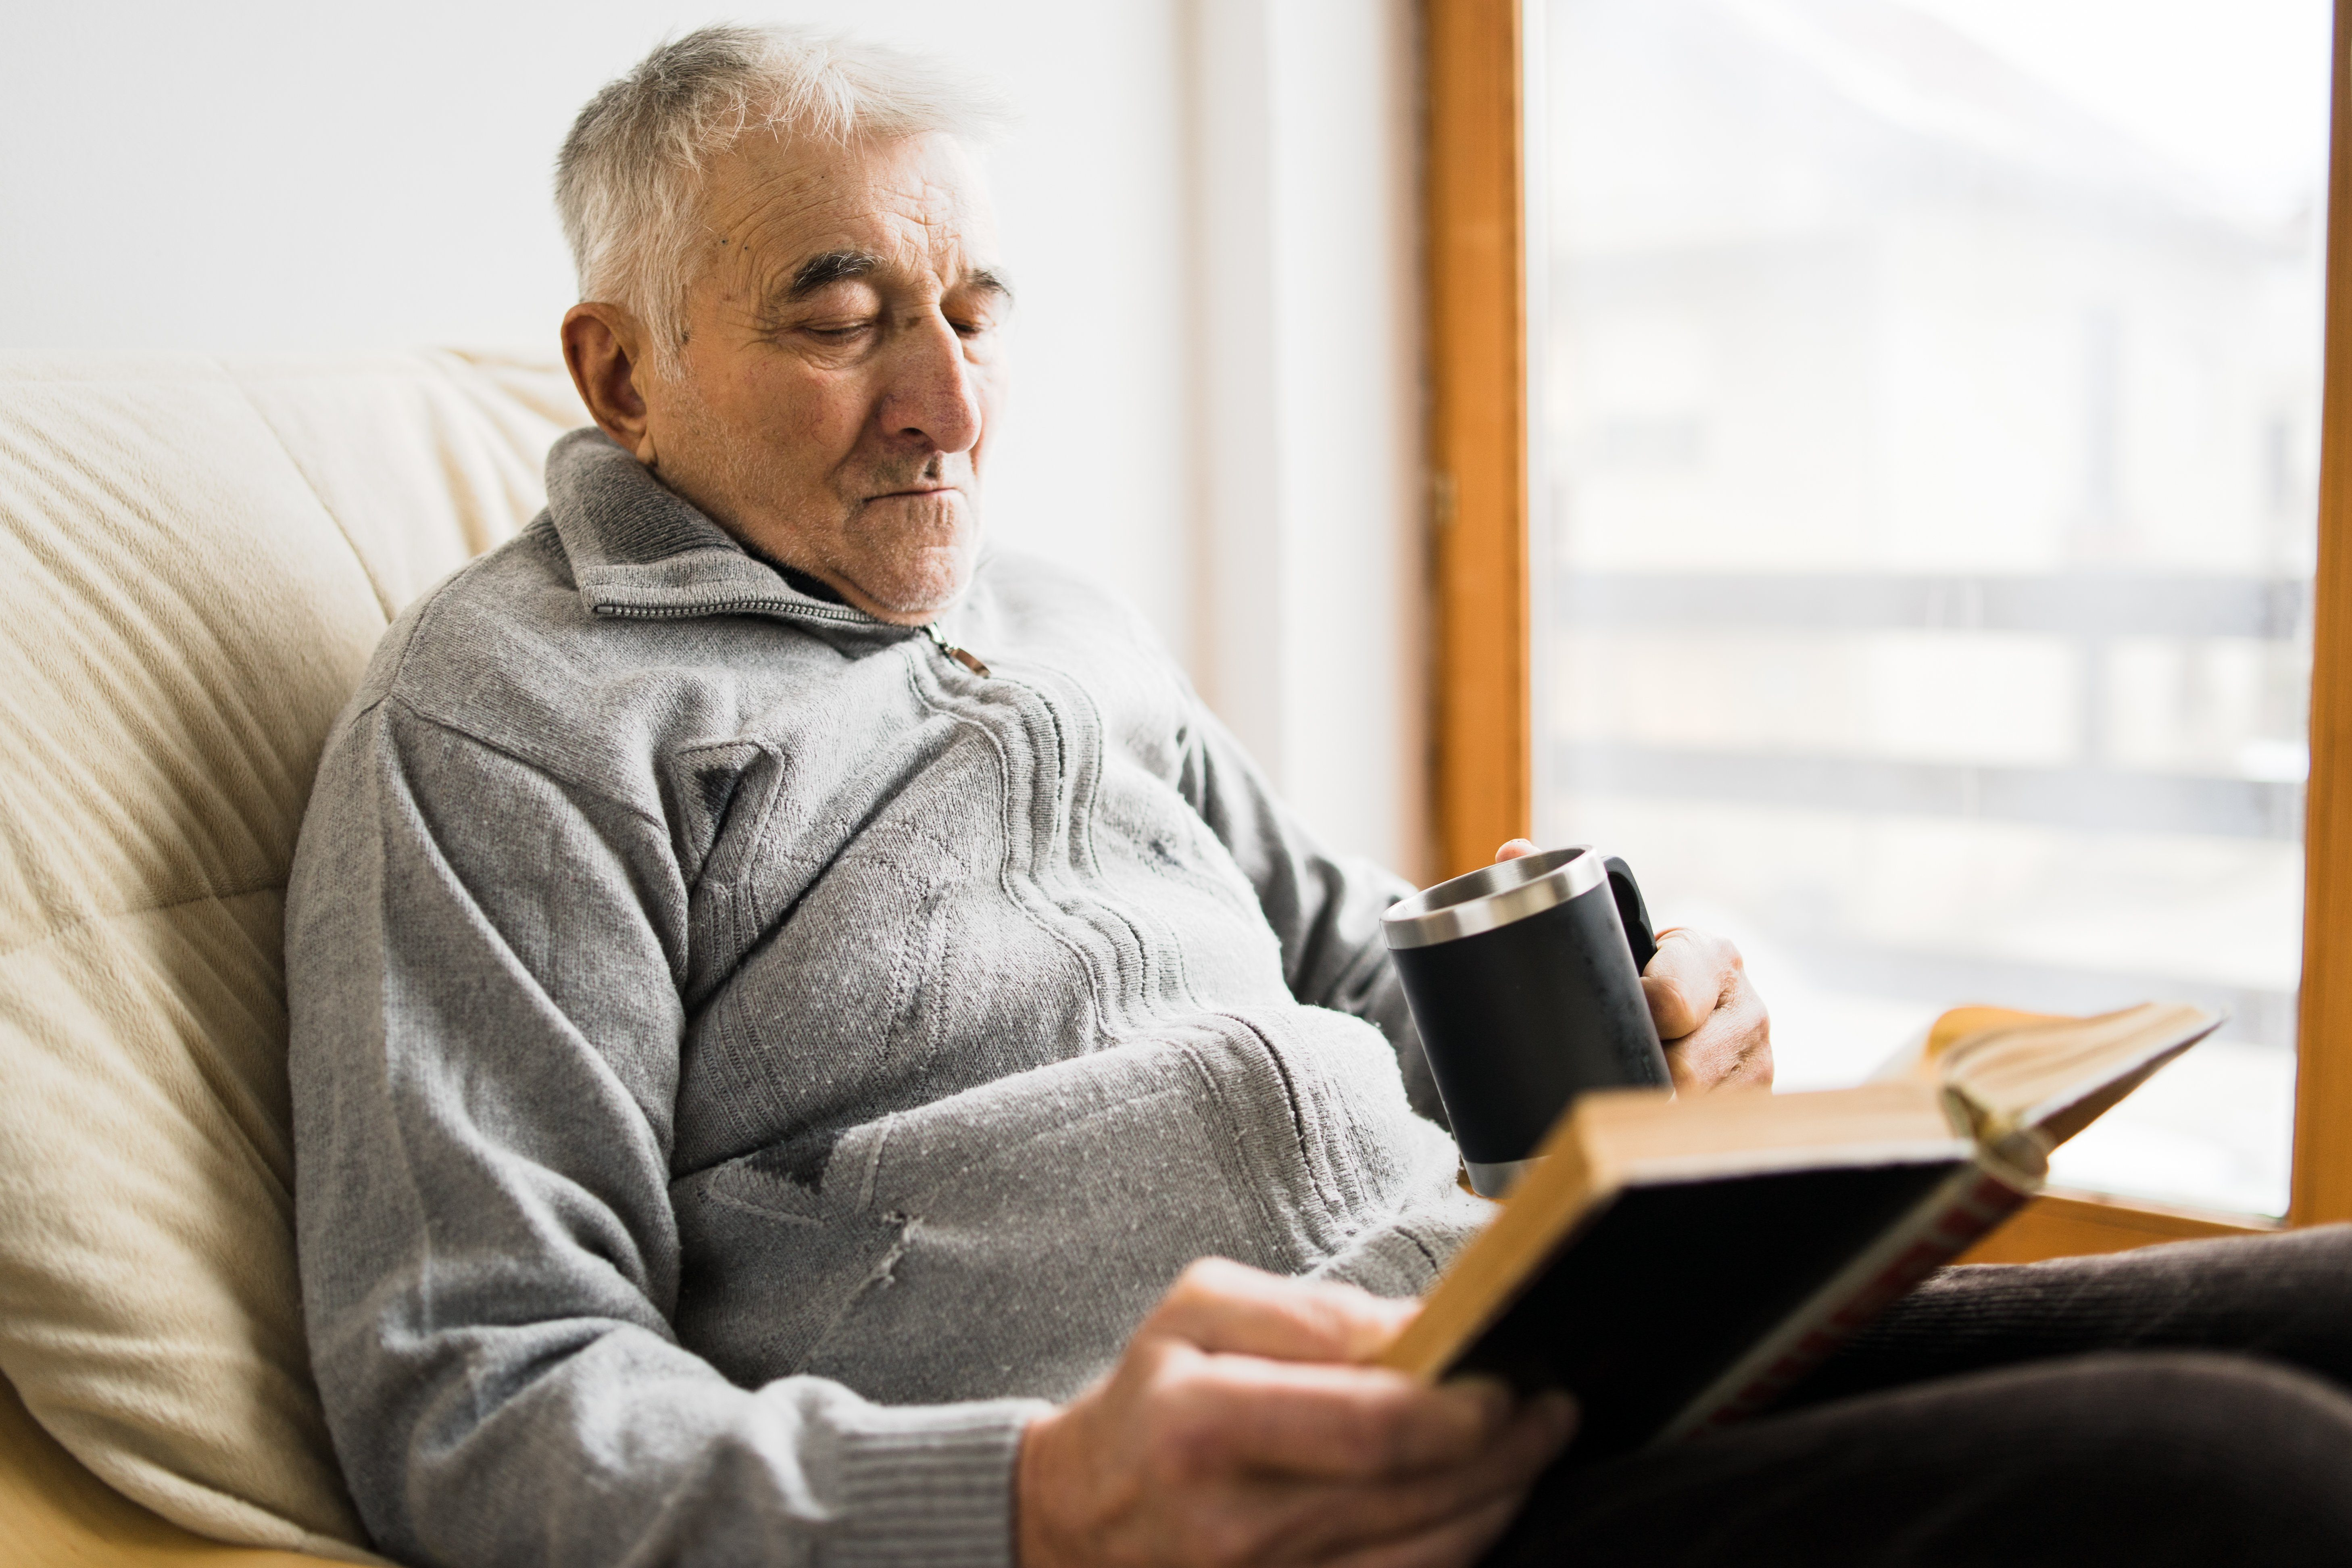 Senior man sitting and Reading a book at the retirement nursing home with cup of tea in hand